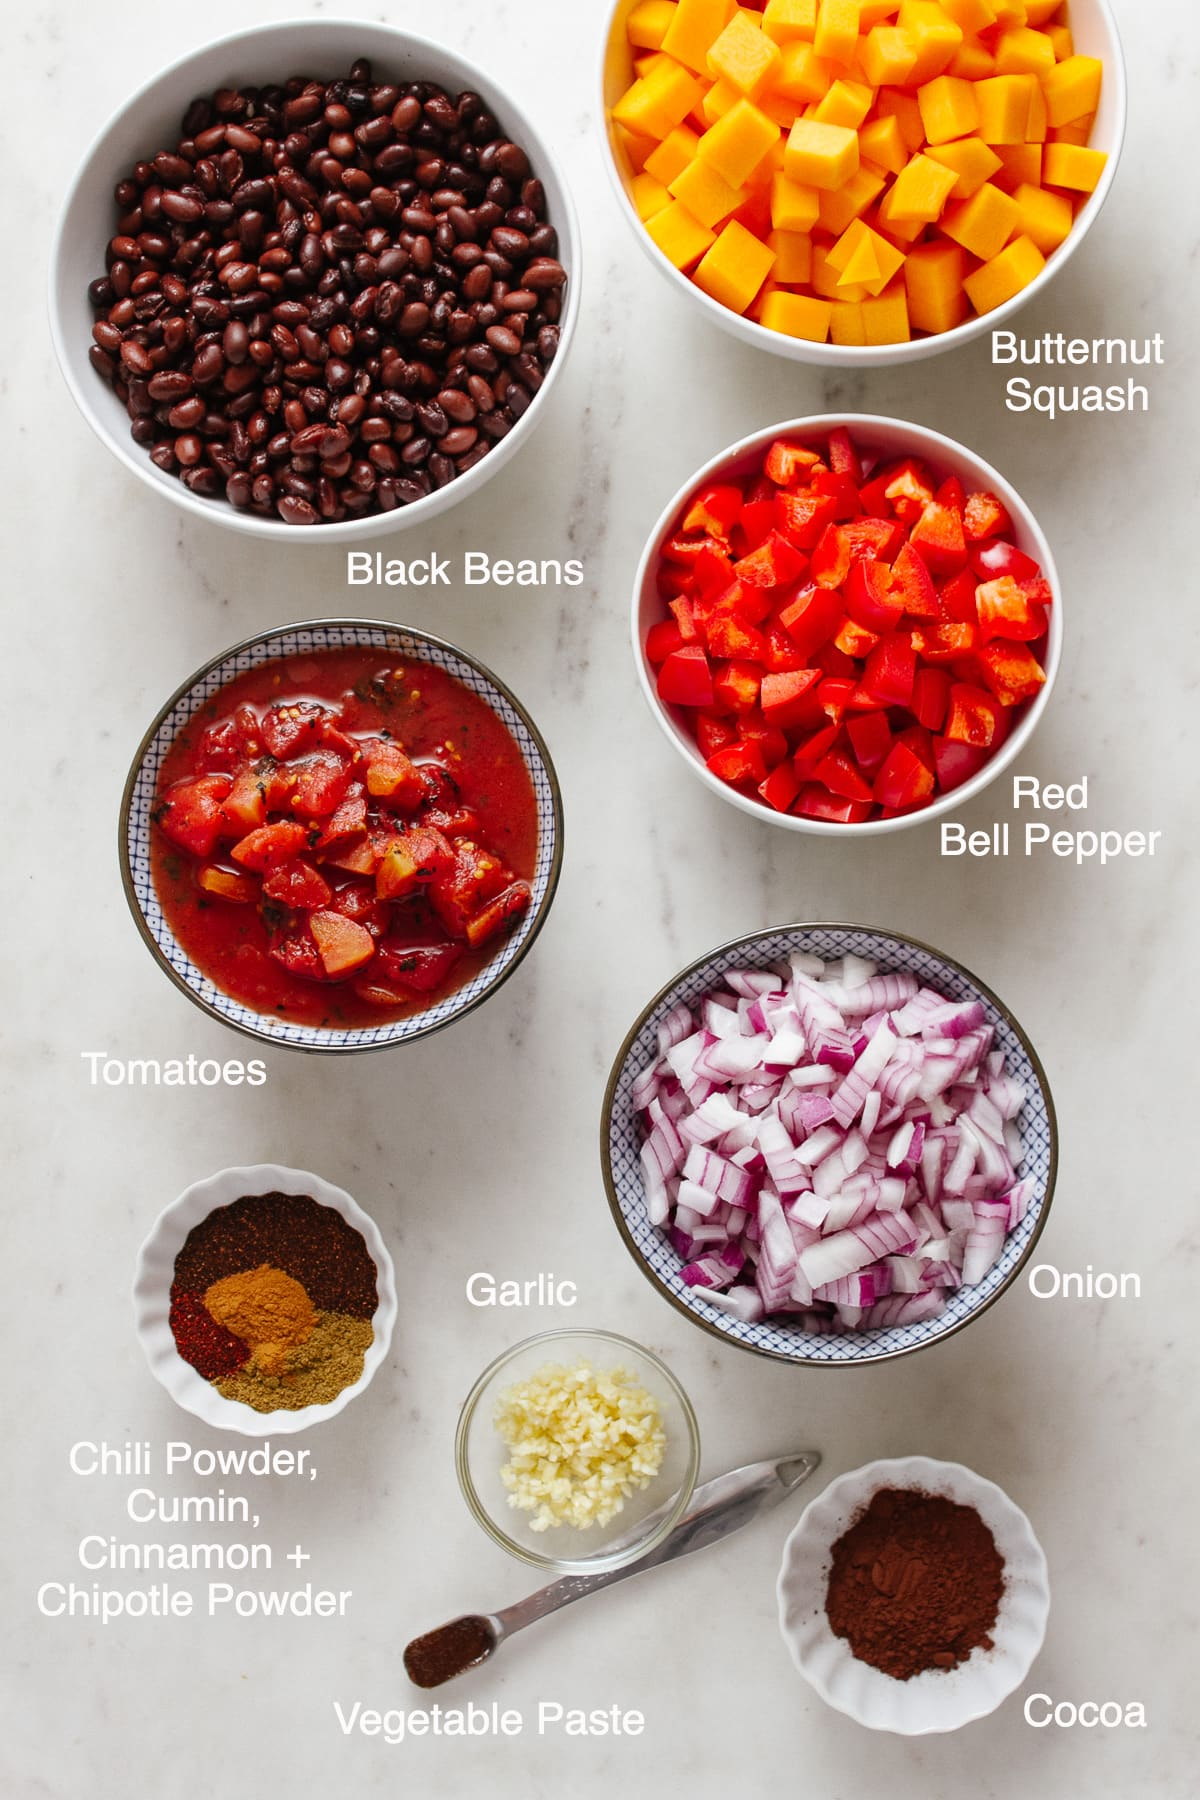 top down view of ingredients needed to make vegan butternut squash chili with black beans.